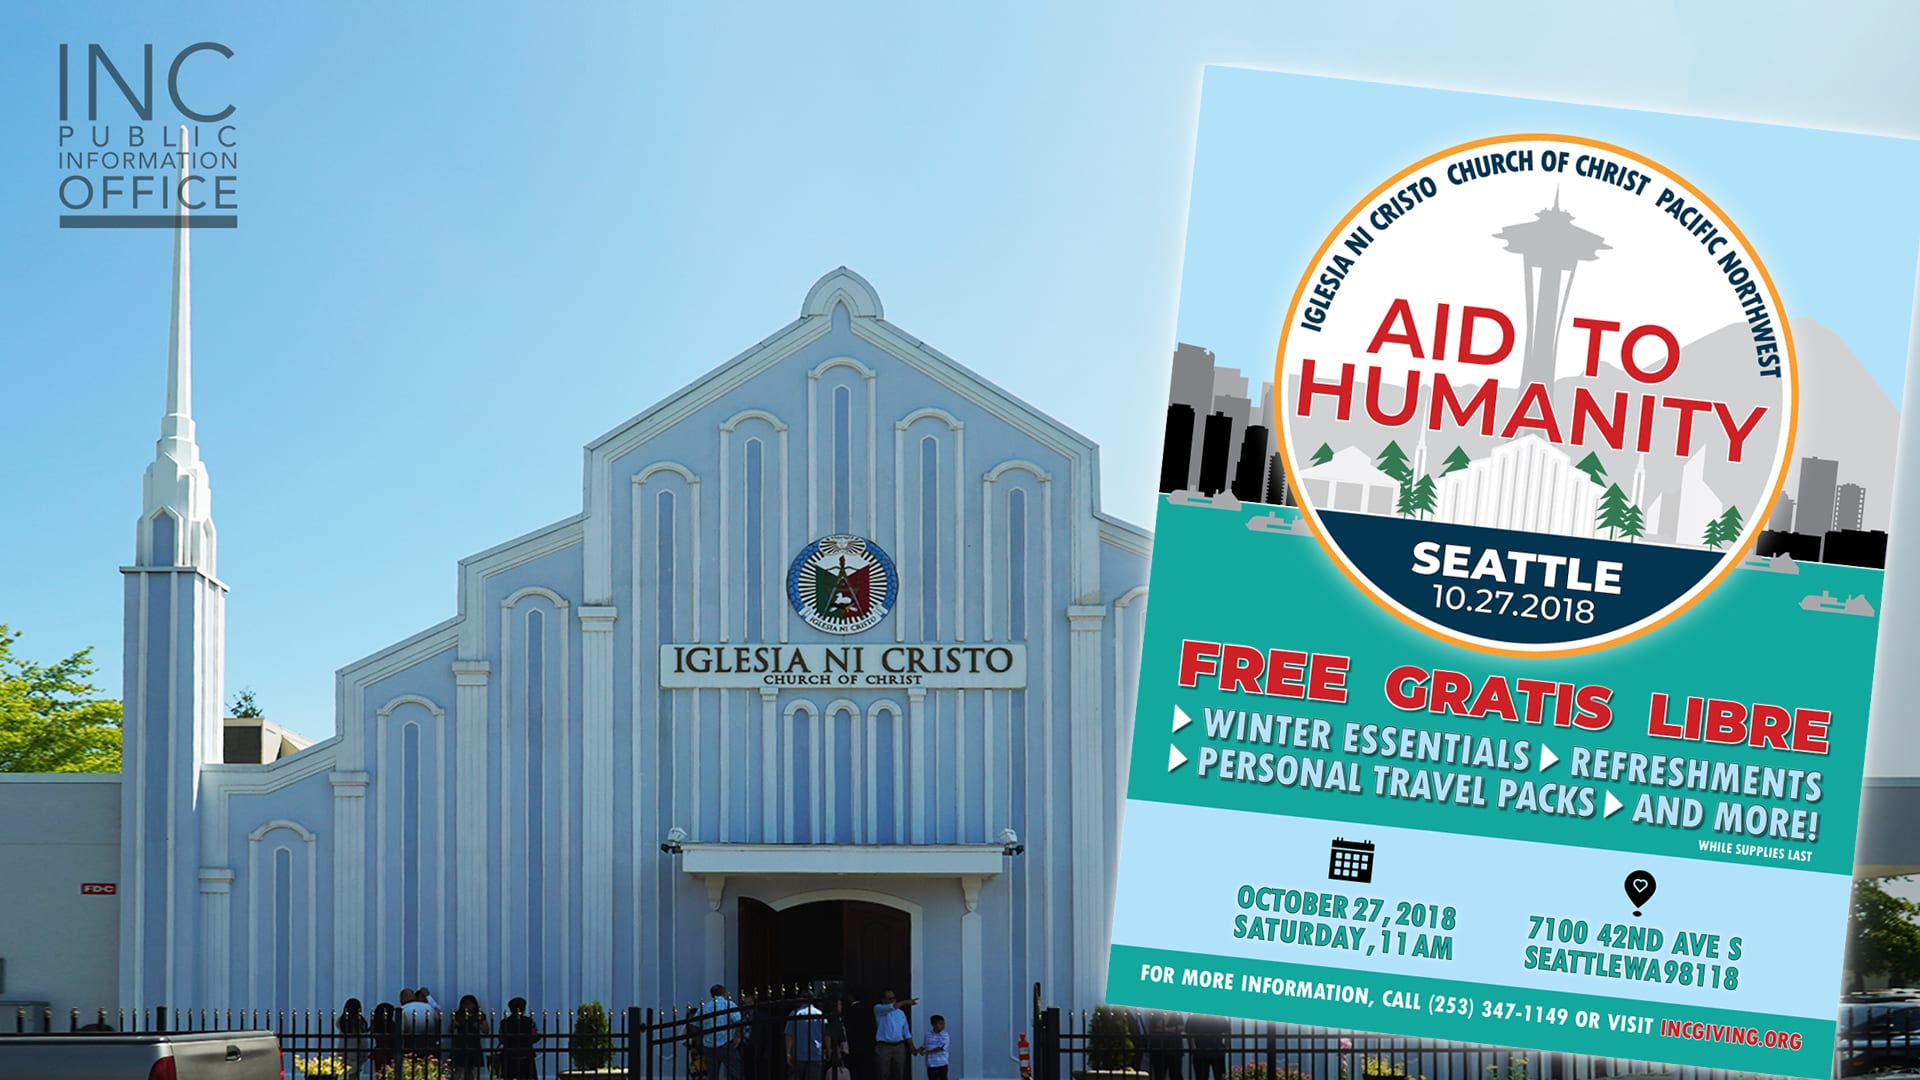 """Church Of Christ house of worship in Seattle, with overlay flyer: """"Aid to Humanity - Seattle"""""""